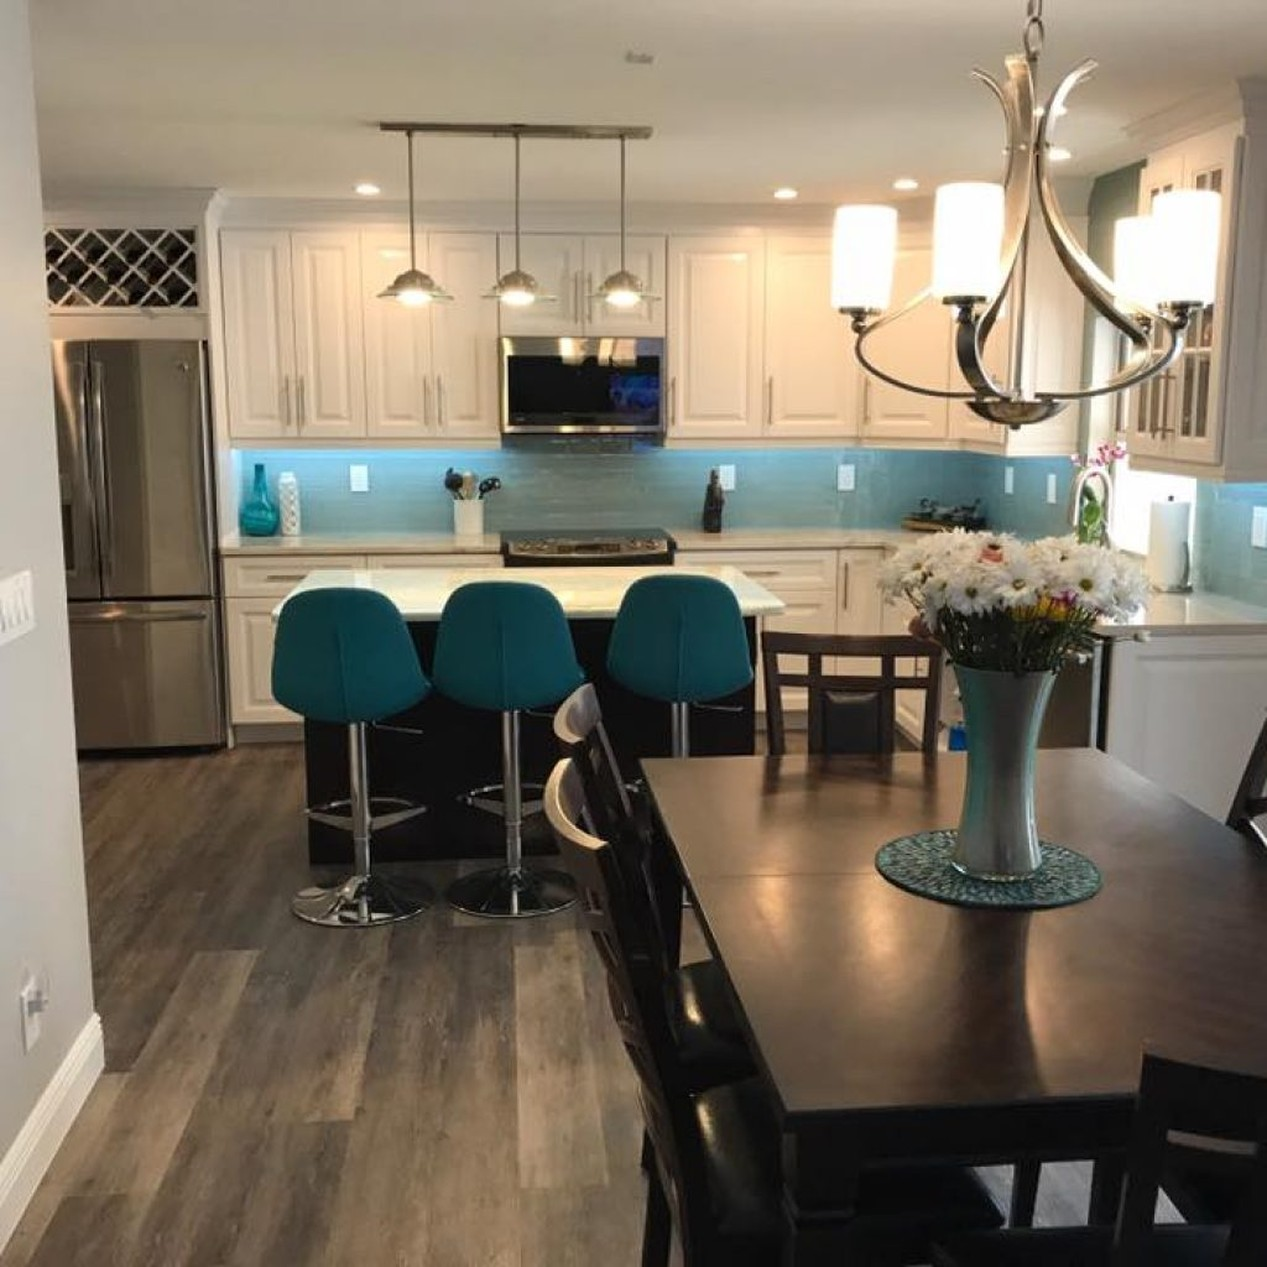 Custom Kitchen and Bathroom and Refinishing | The Next Generation Kitchen and Bathroom Inc.